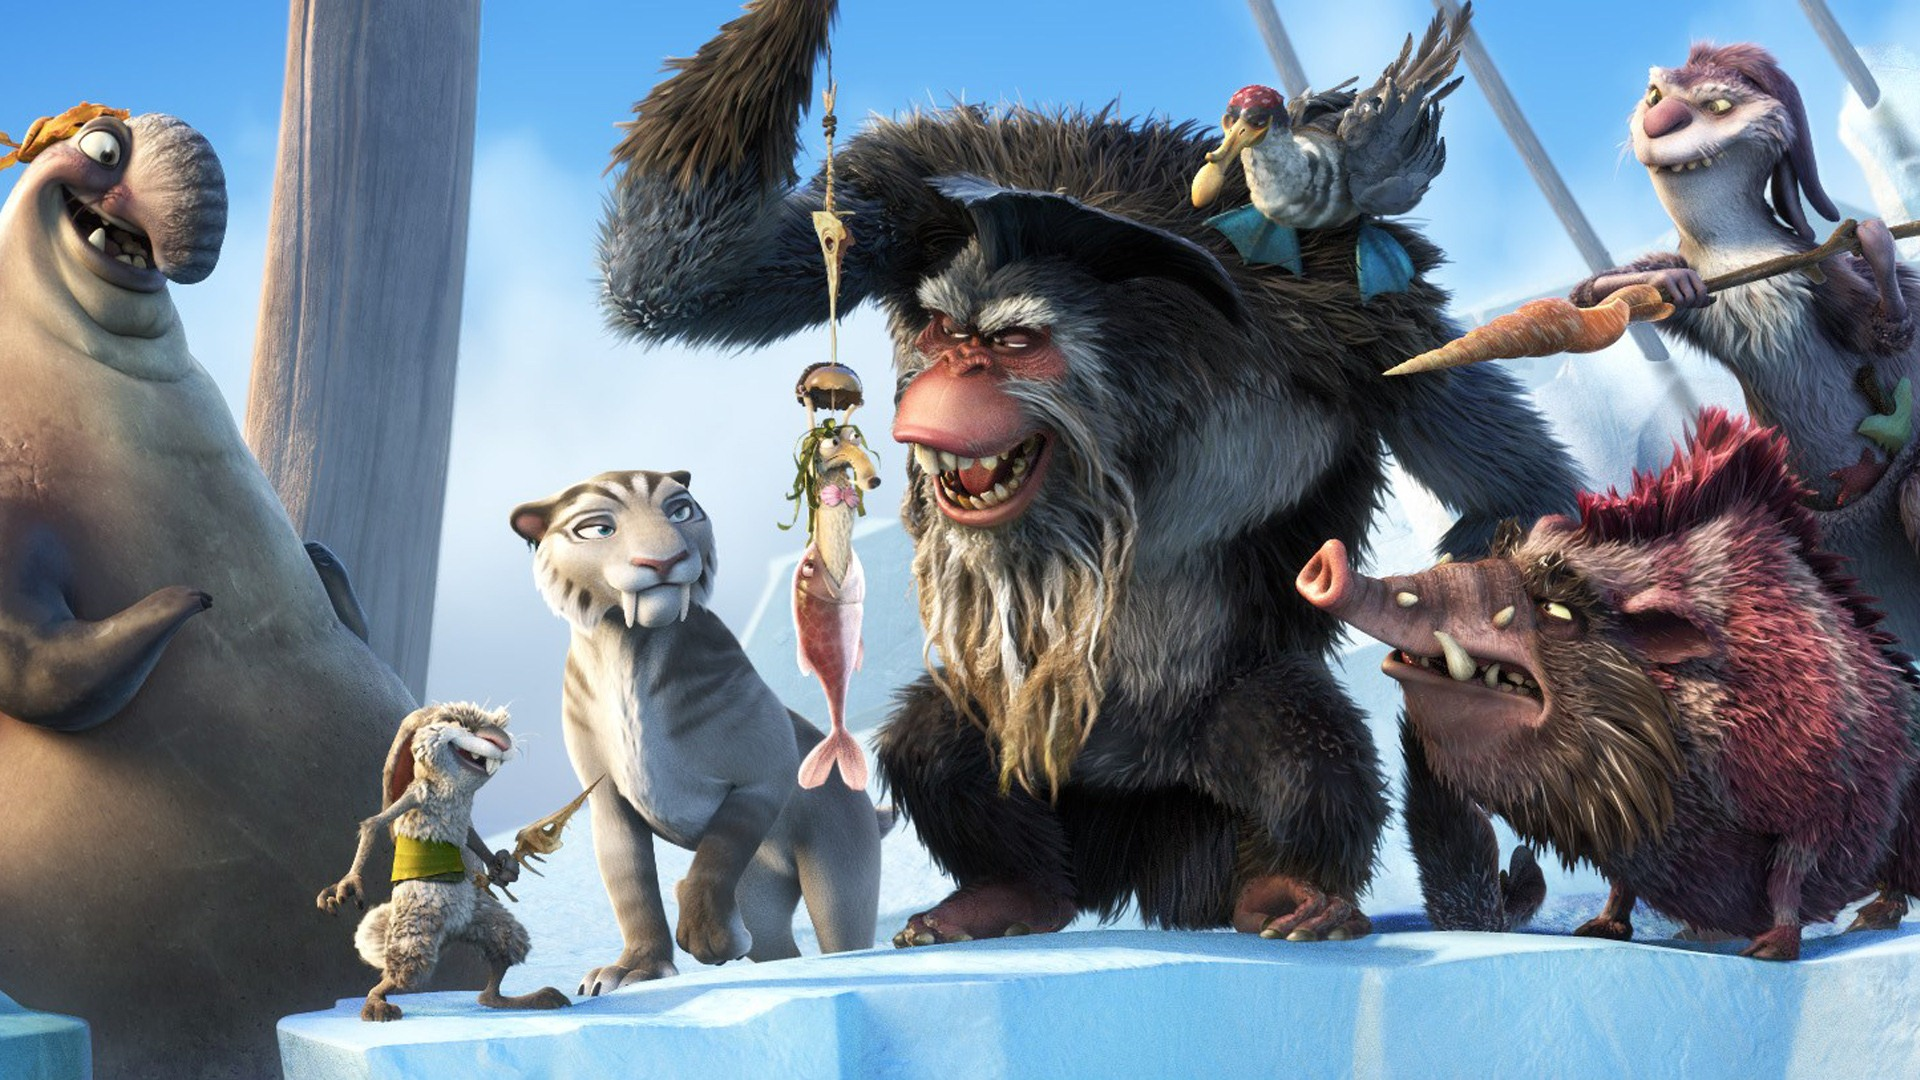 ice age 4: continental drift hd wallpapers #13 - 1920x1080 wallpaper